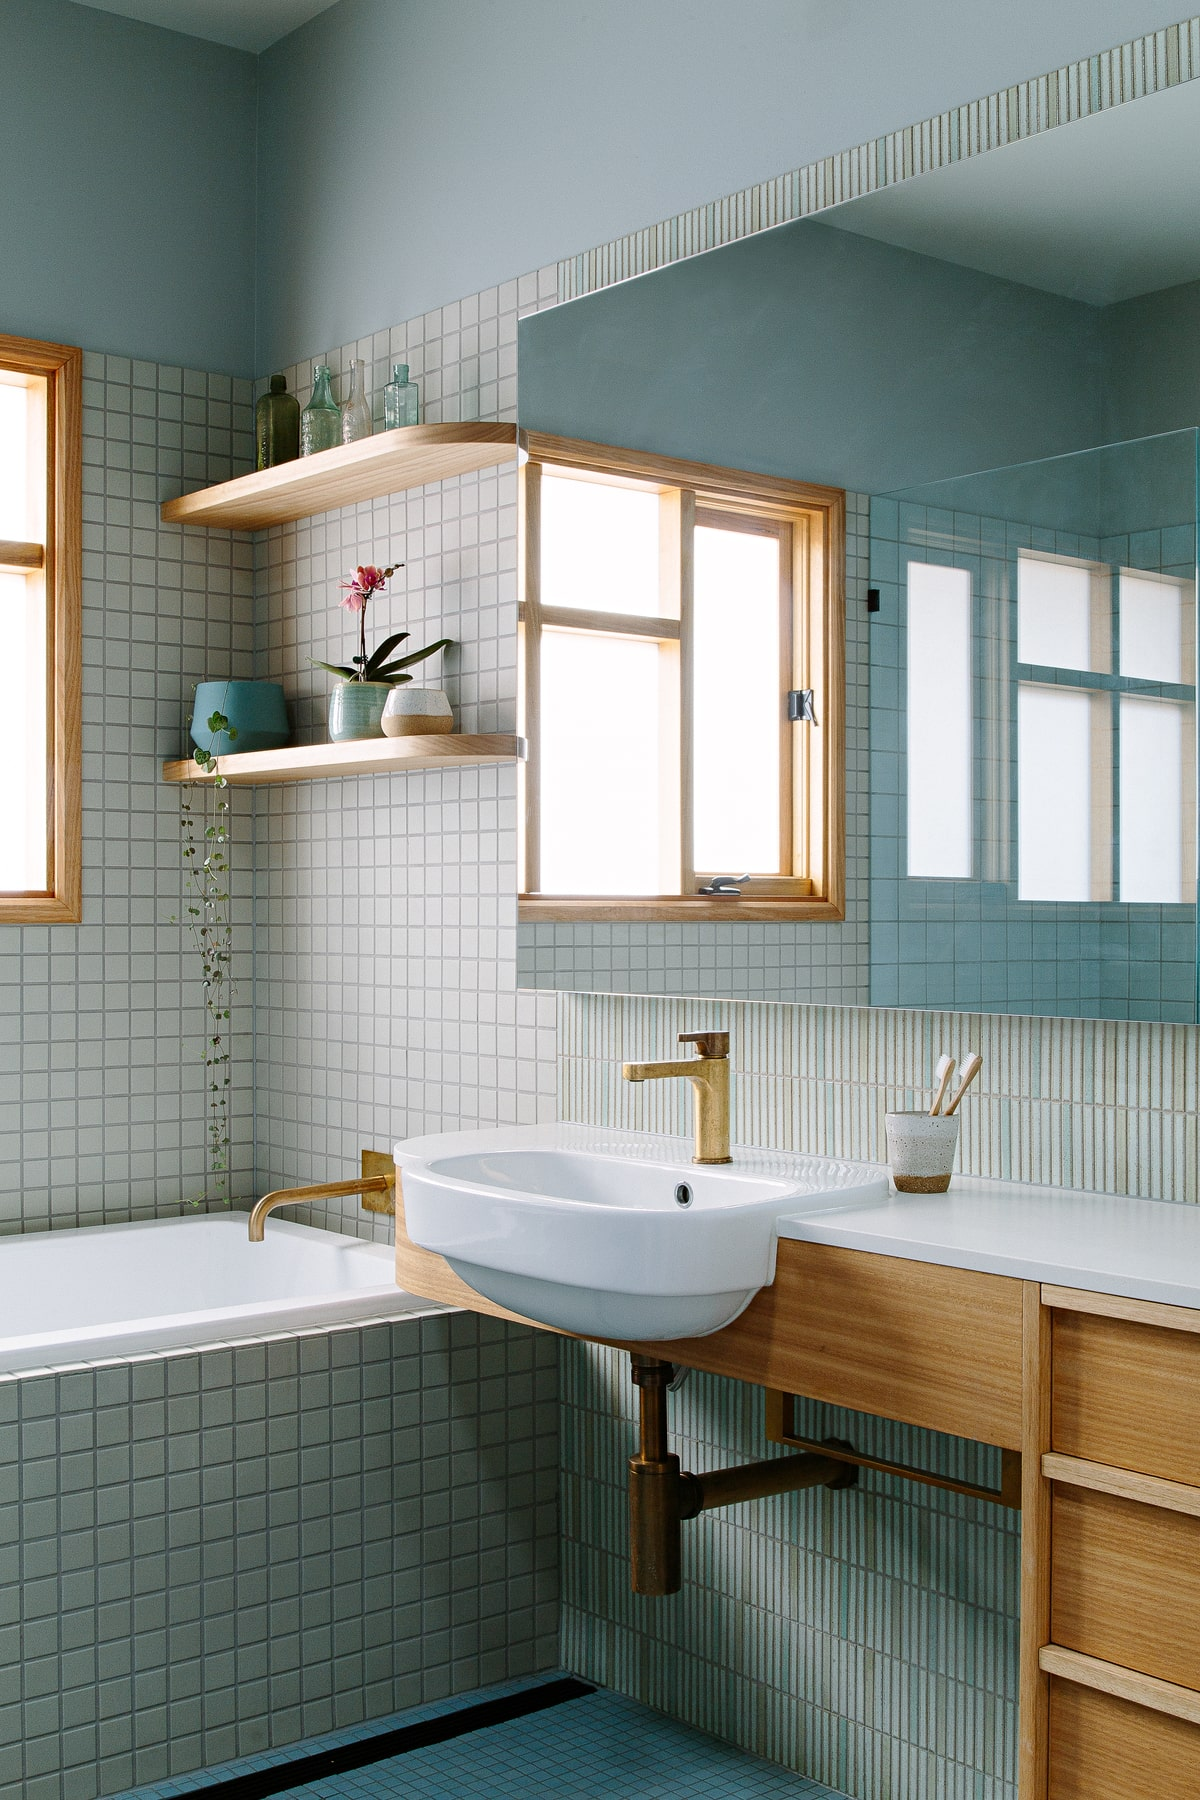 Yarravillia Project By Brave New Eco Local Residential Architecture And Bathroon Interior Design Yarraville,melbourne Image 18